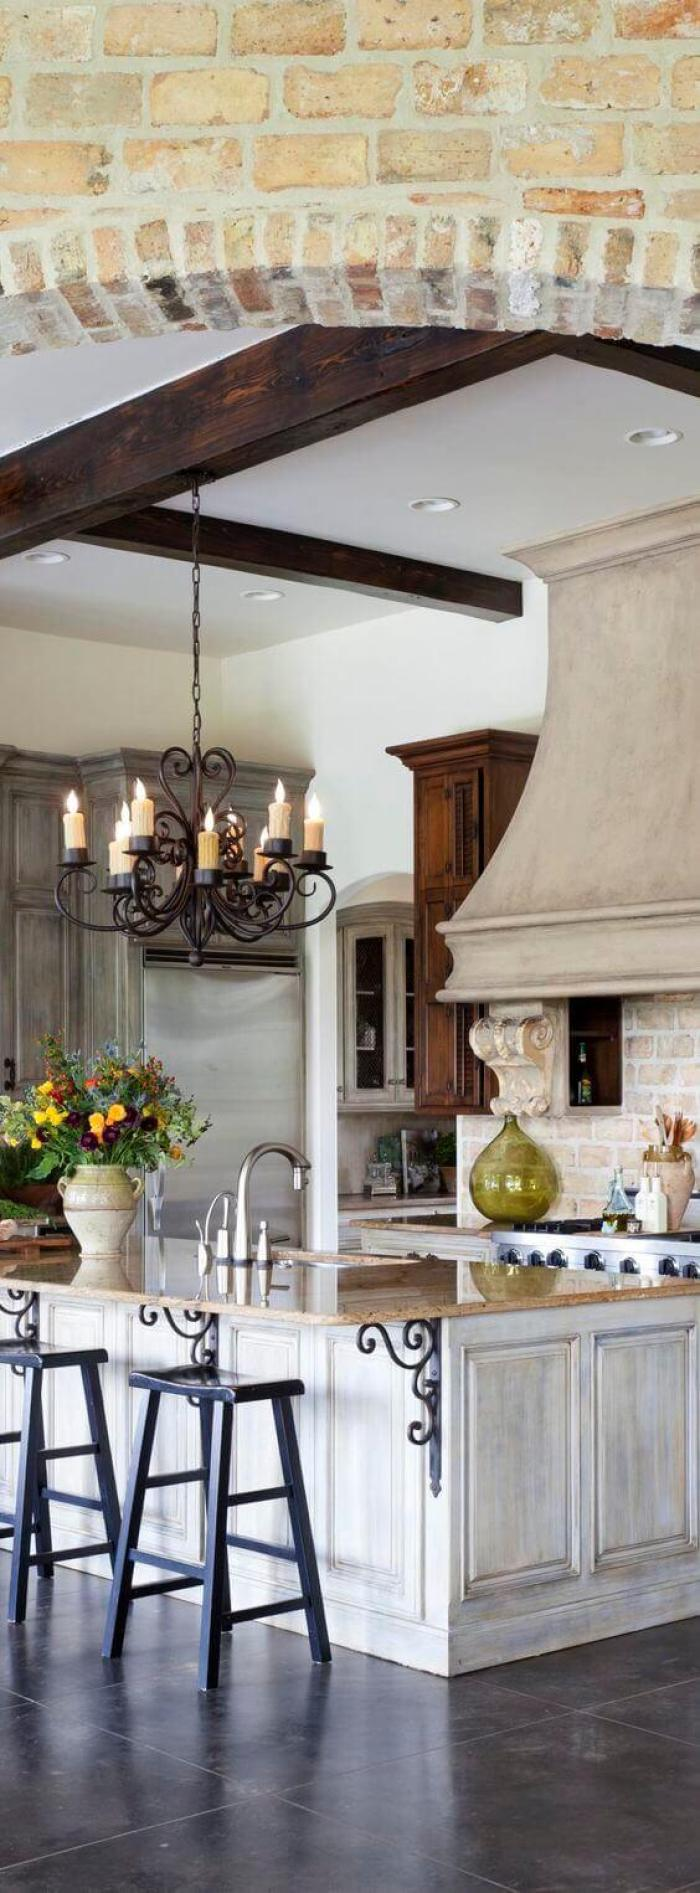 French Country Decor Fancy Kitchen with Chandeliers - Harptimes.com